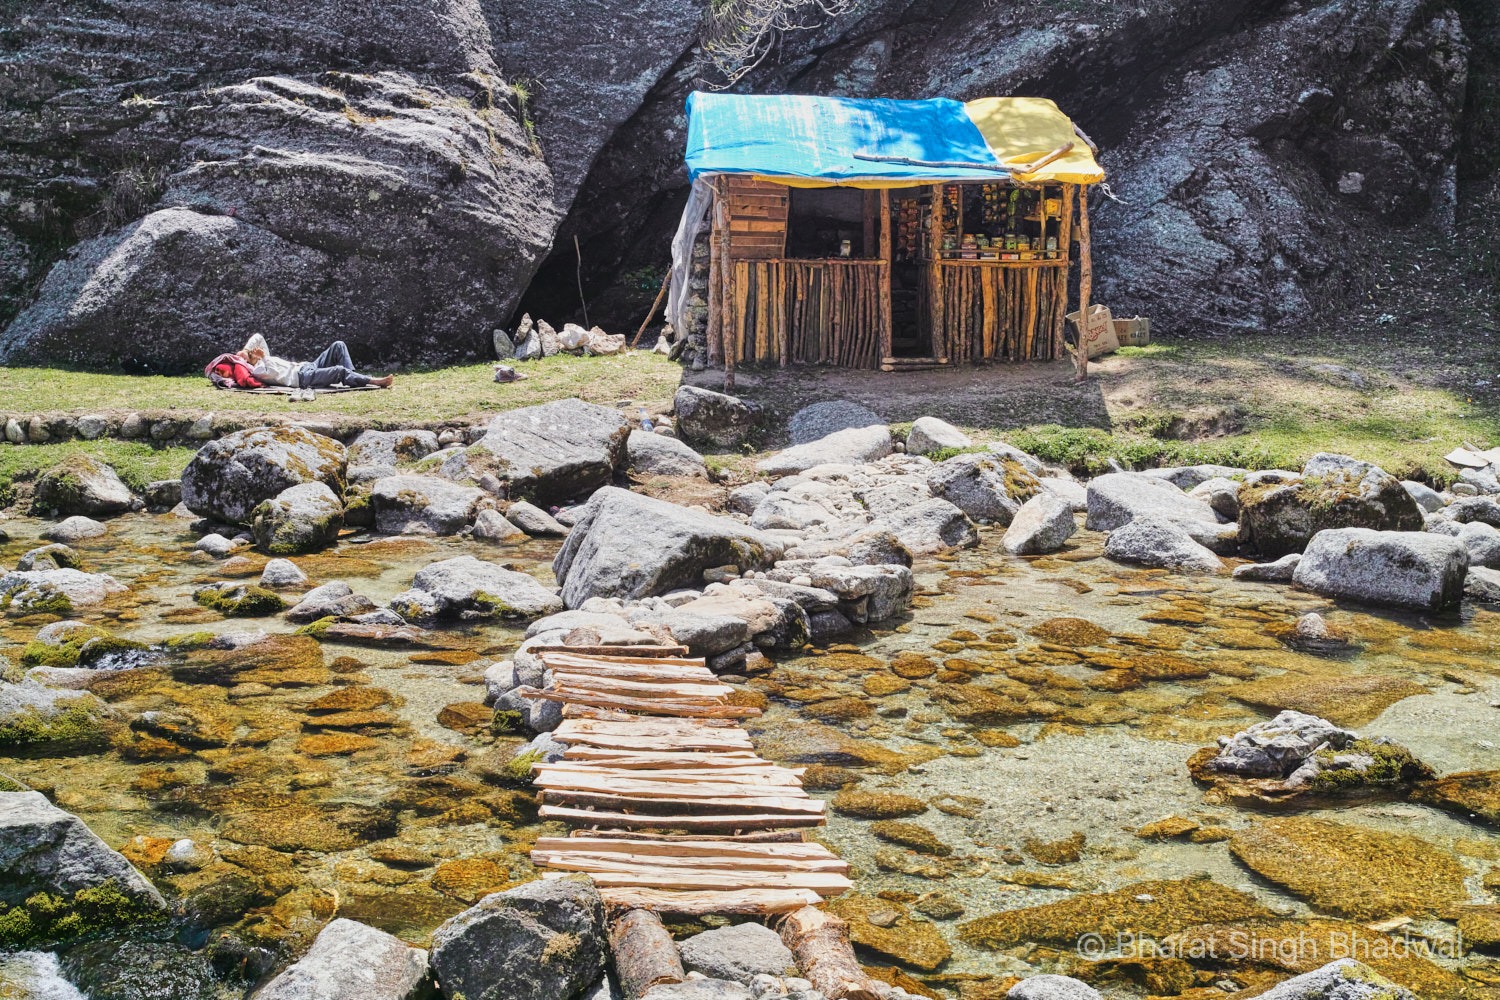 A cleverly constructed approach to a tea shop on Kareri lake trek